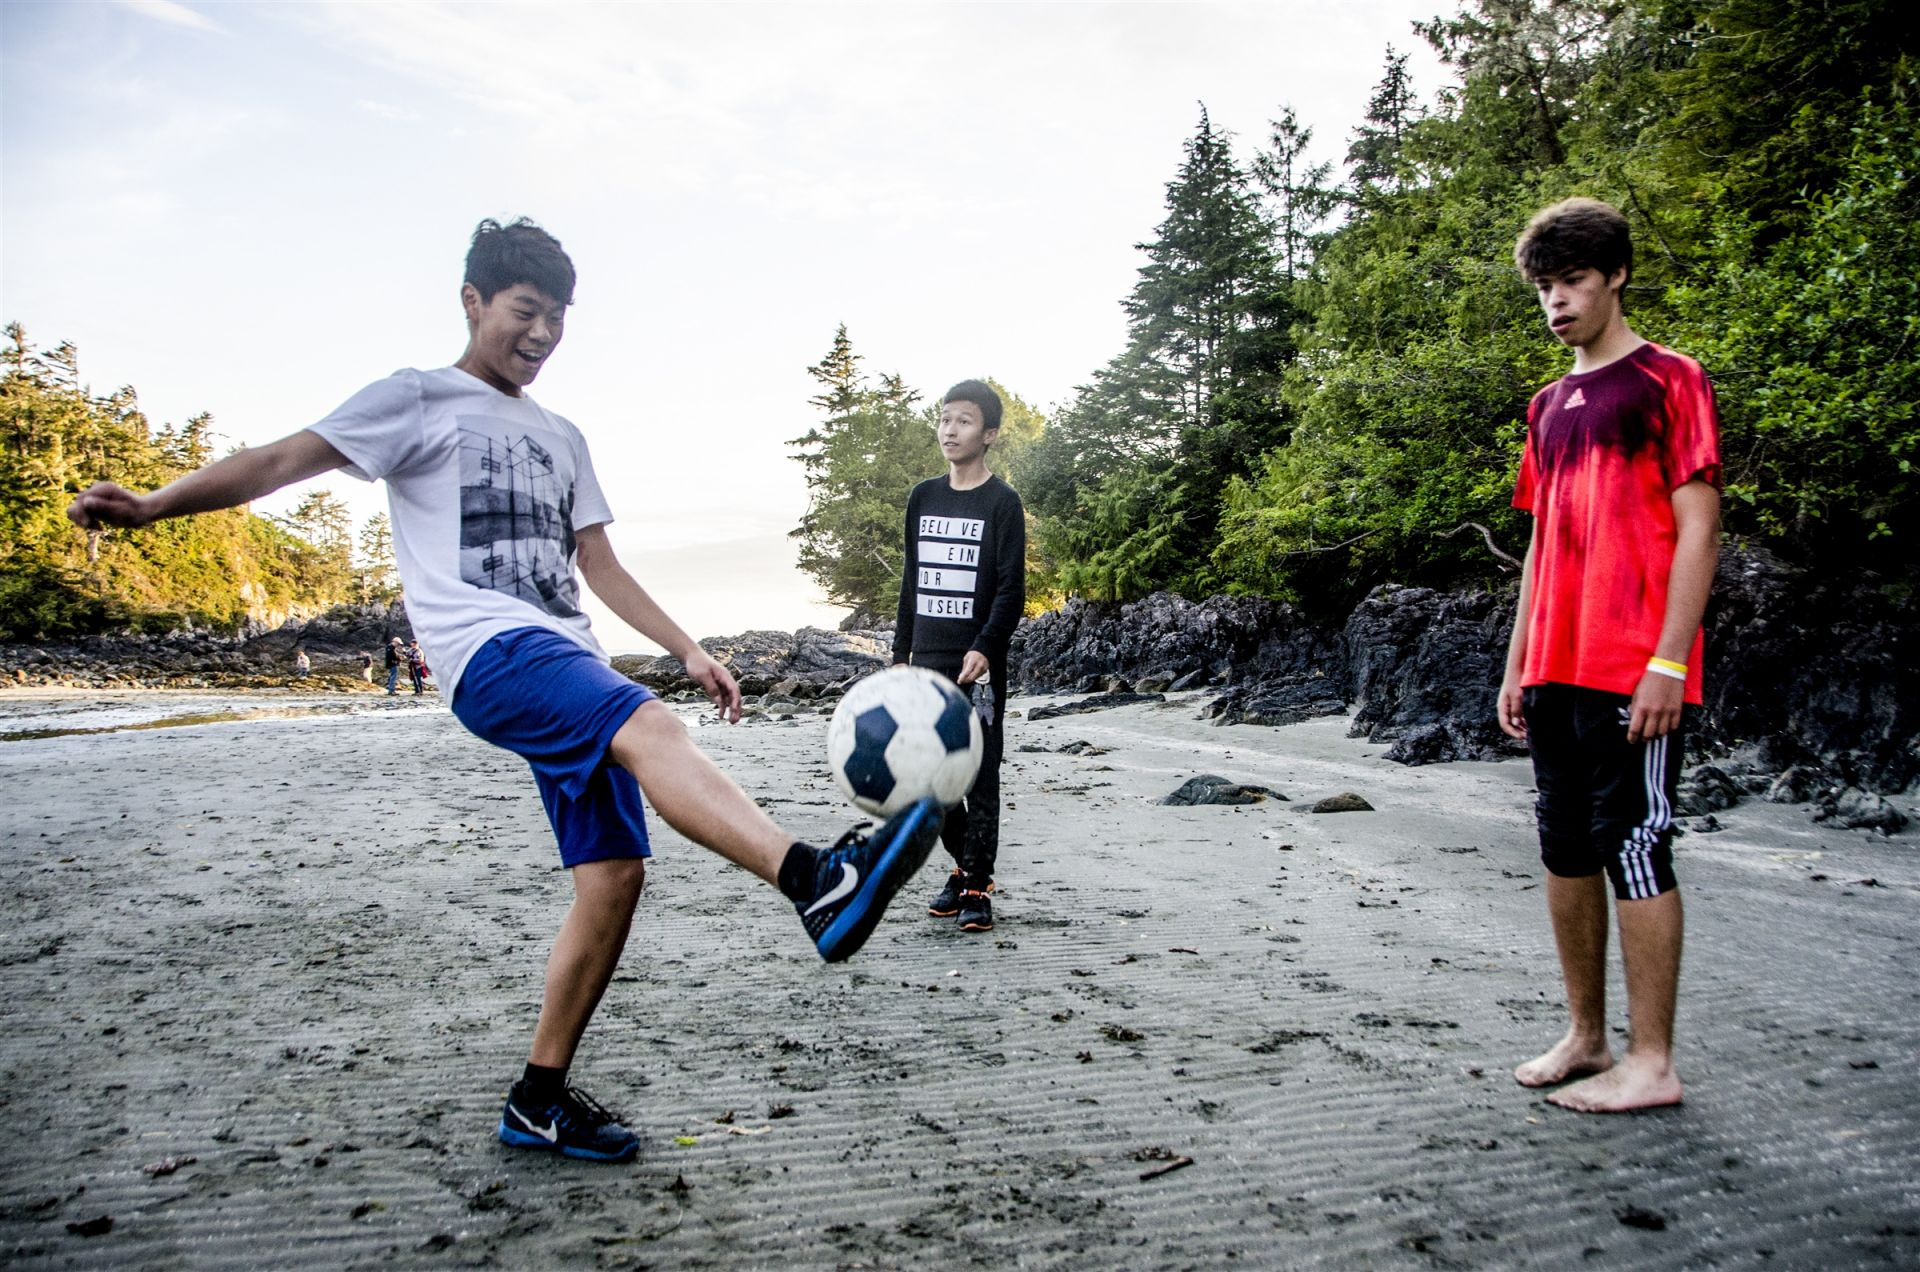 Prep students from Brazil and China play soccer on the beach during a midterm break camping and surfing trip to Tofino.